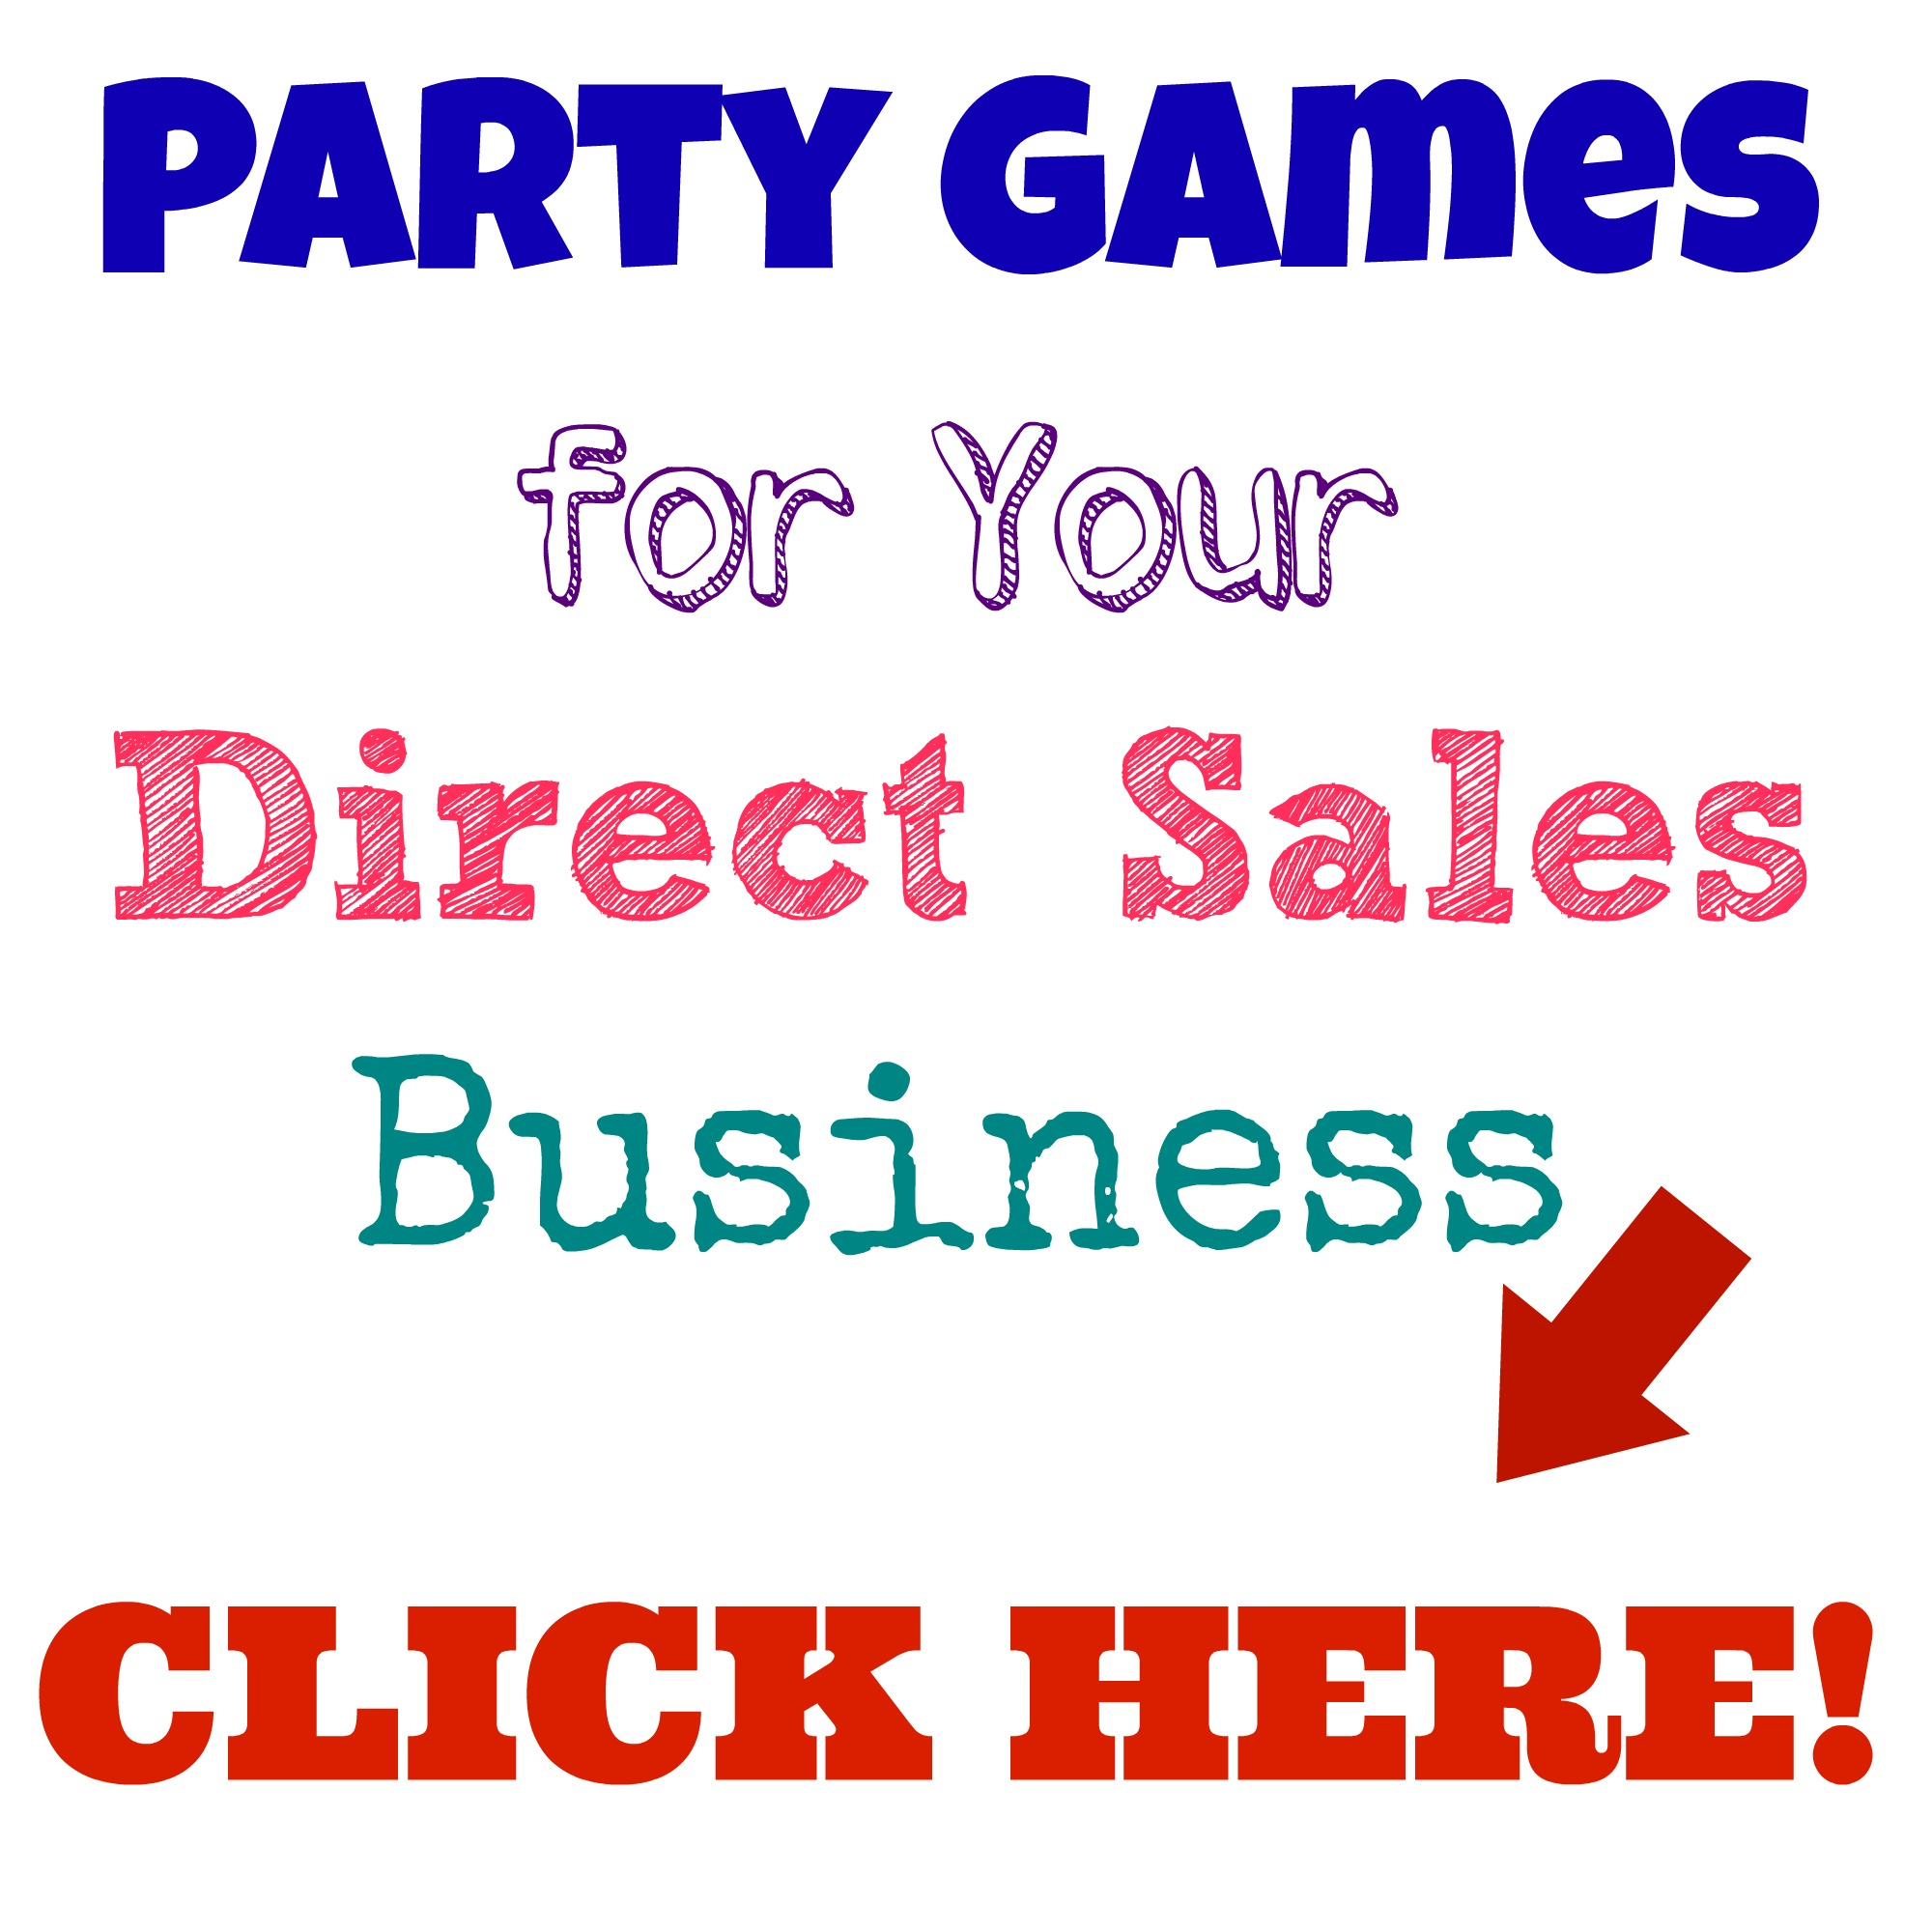 Party Games For Your Direct Sales Business Melissa Fietsam